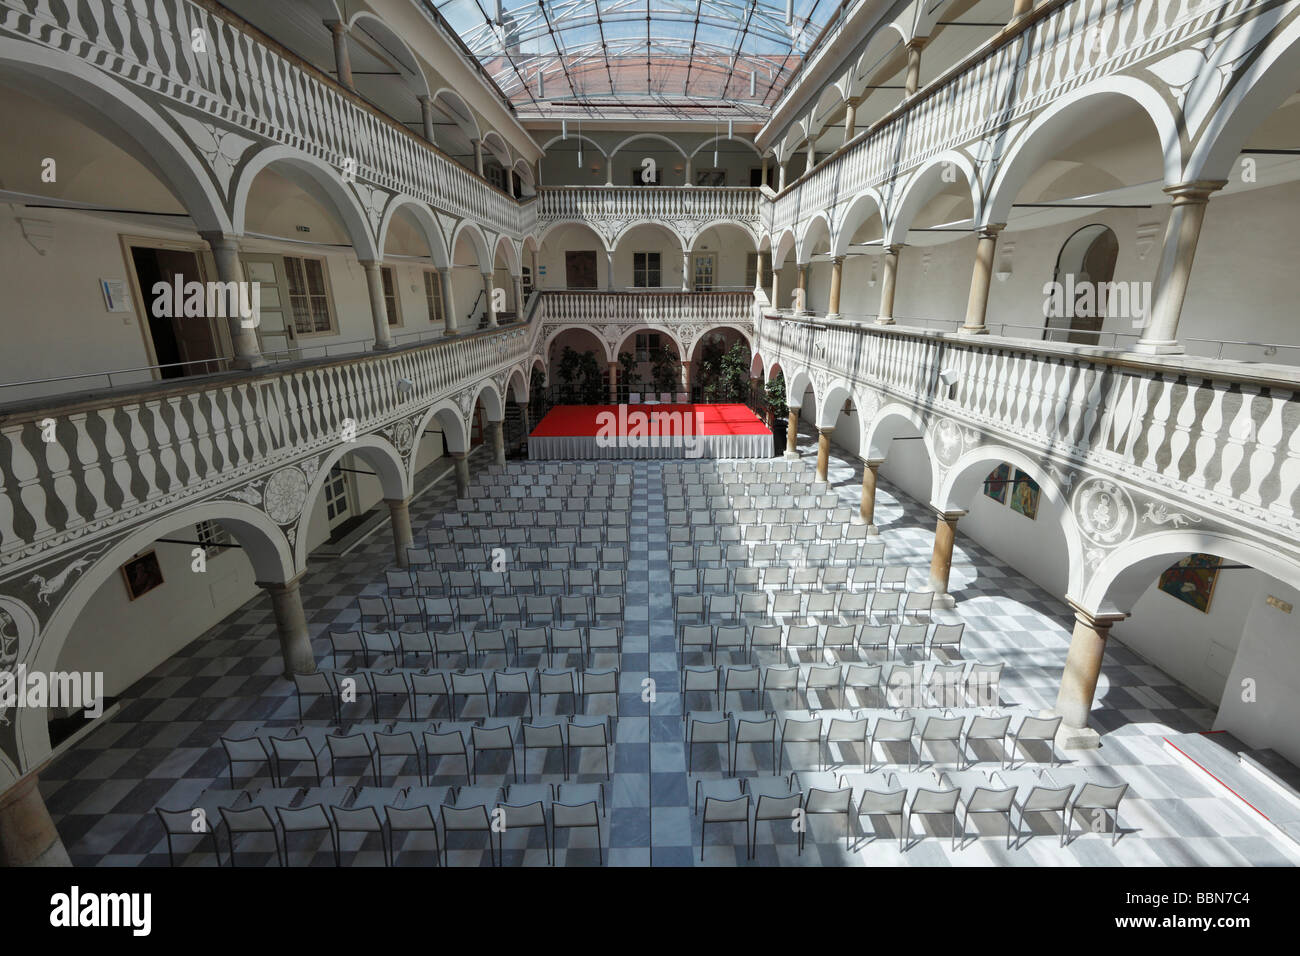 Renaissance arcades and courtyard at the city hall, St. Veit an der Glan, Carinthia, Austria, Europe - Stock Image